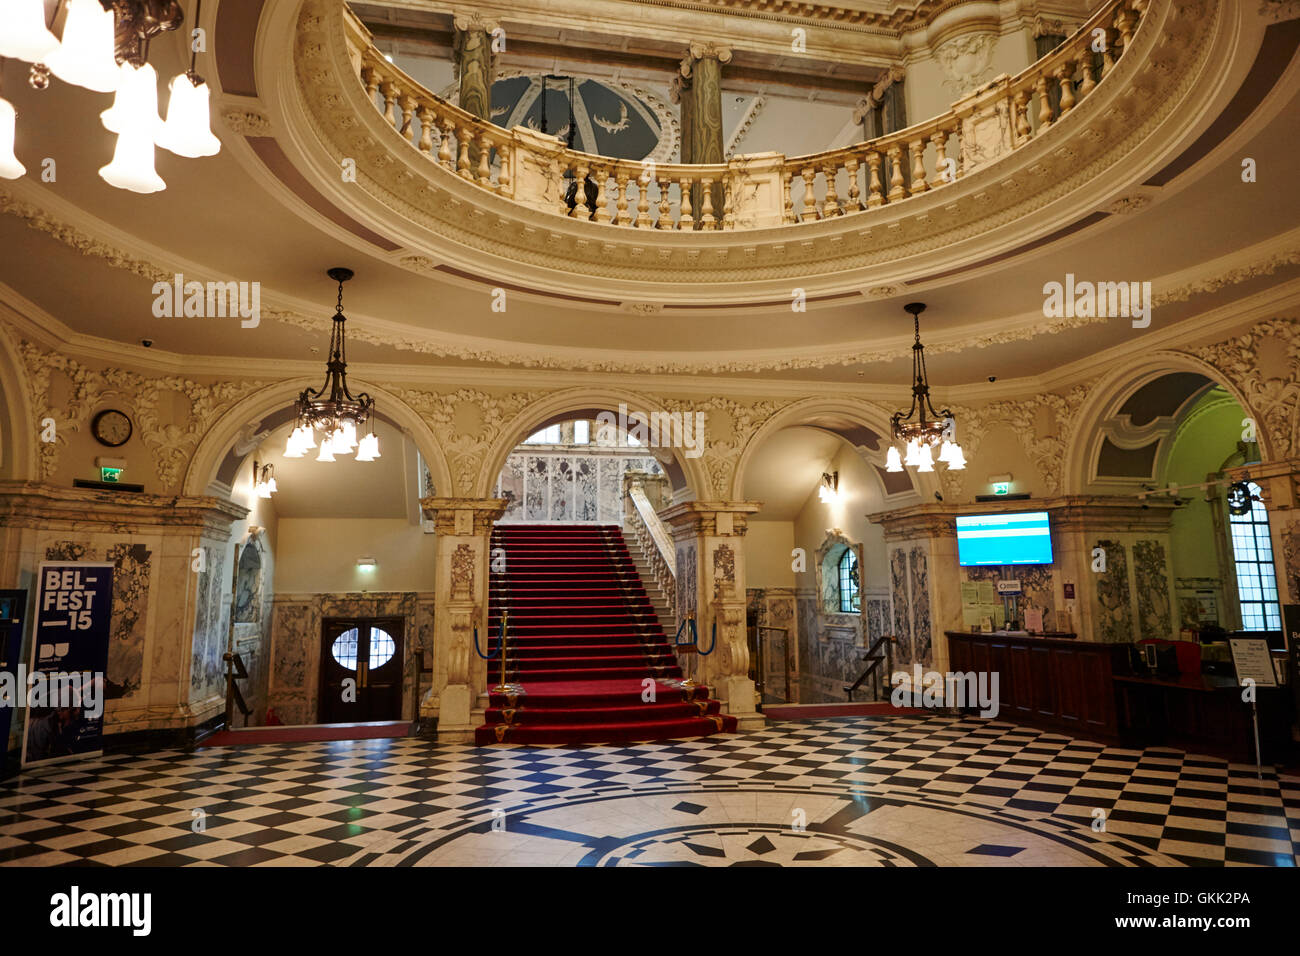 The Grand Staircase Foyer Entrance Hall And Rotunda